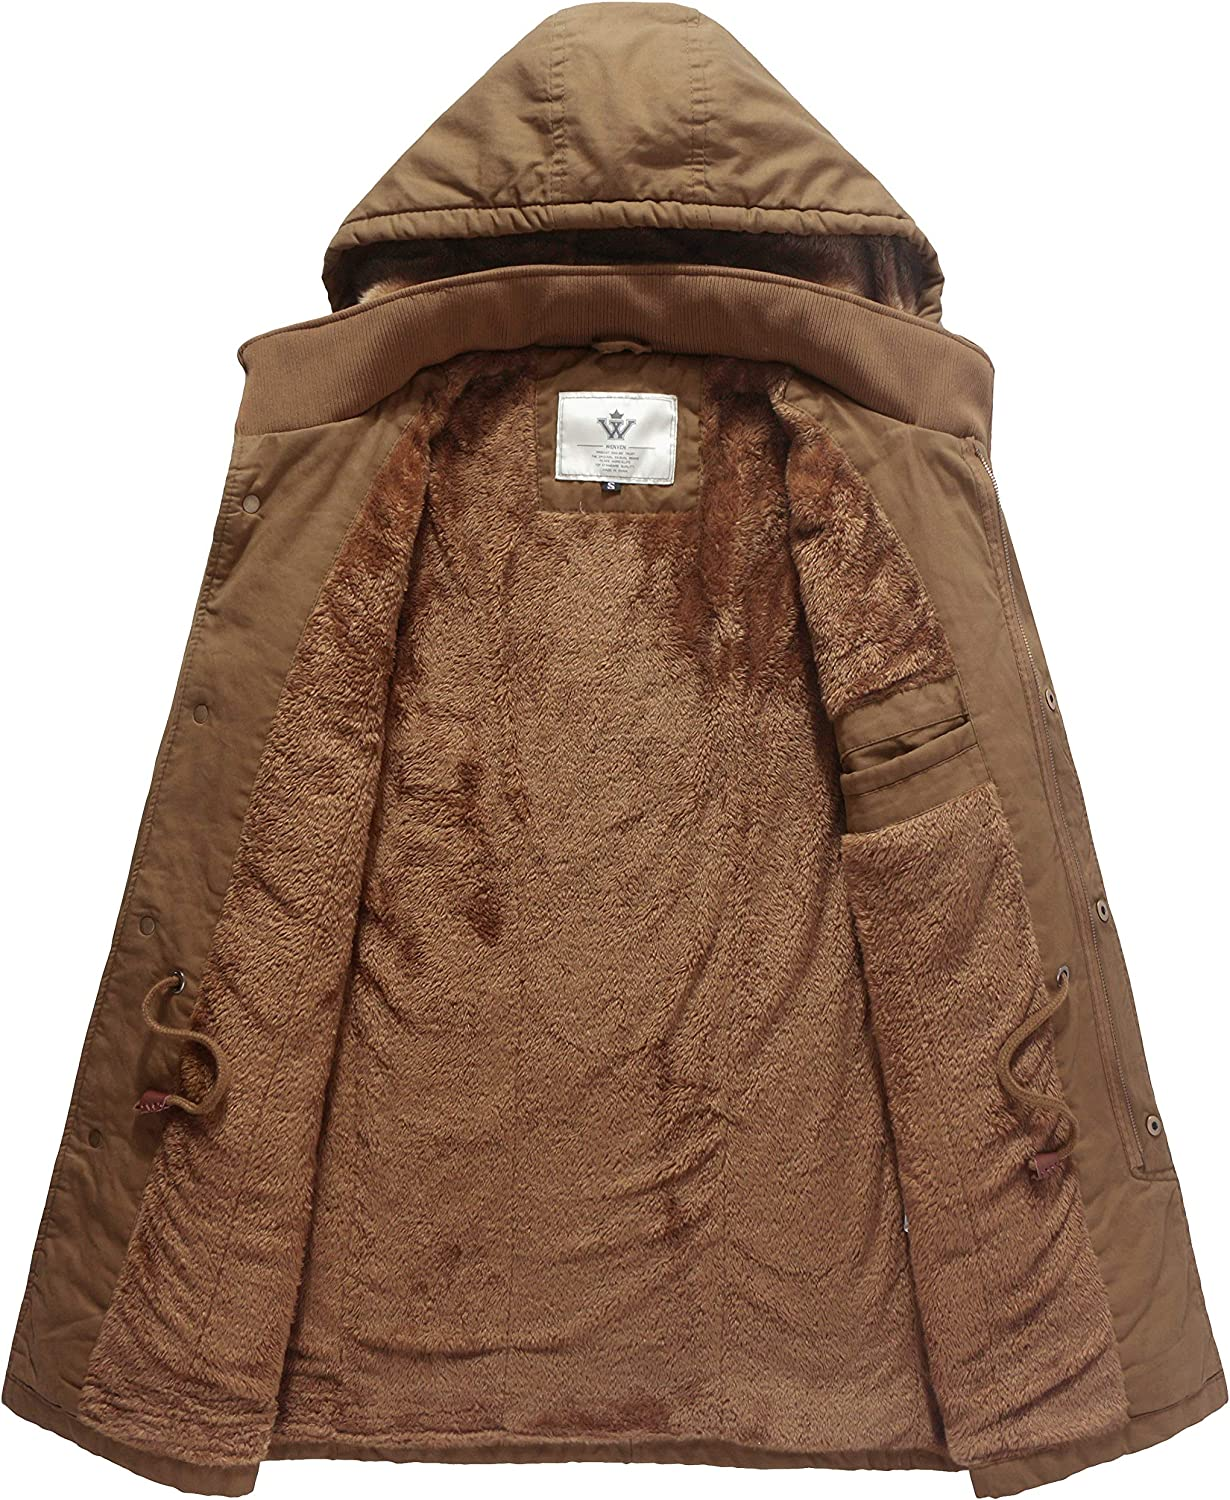 WenVen Mens Winter Military Thicken Parka Jacket with Removable Hood